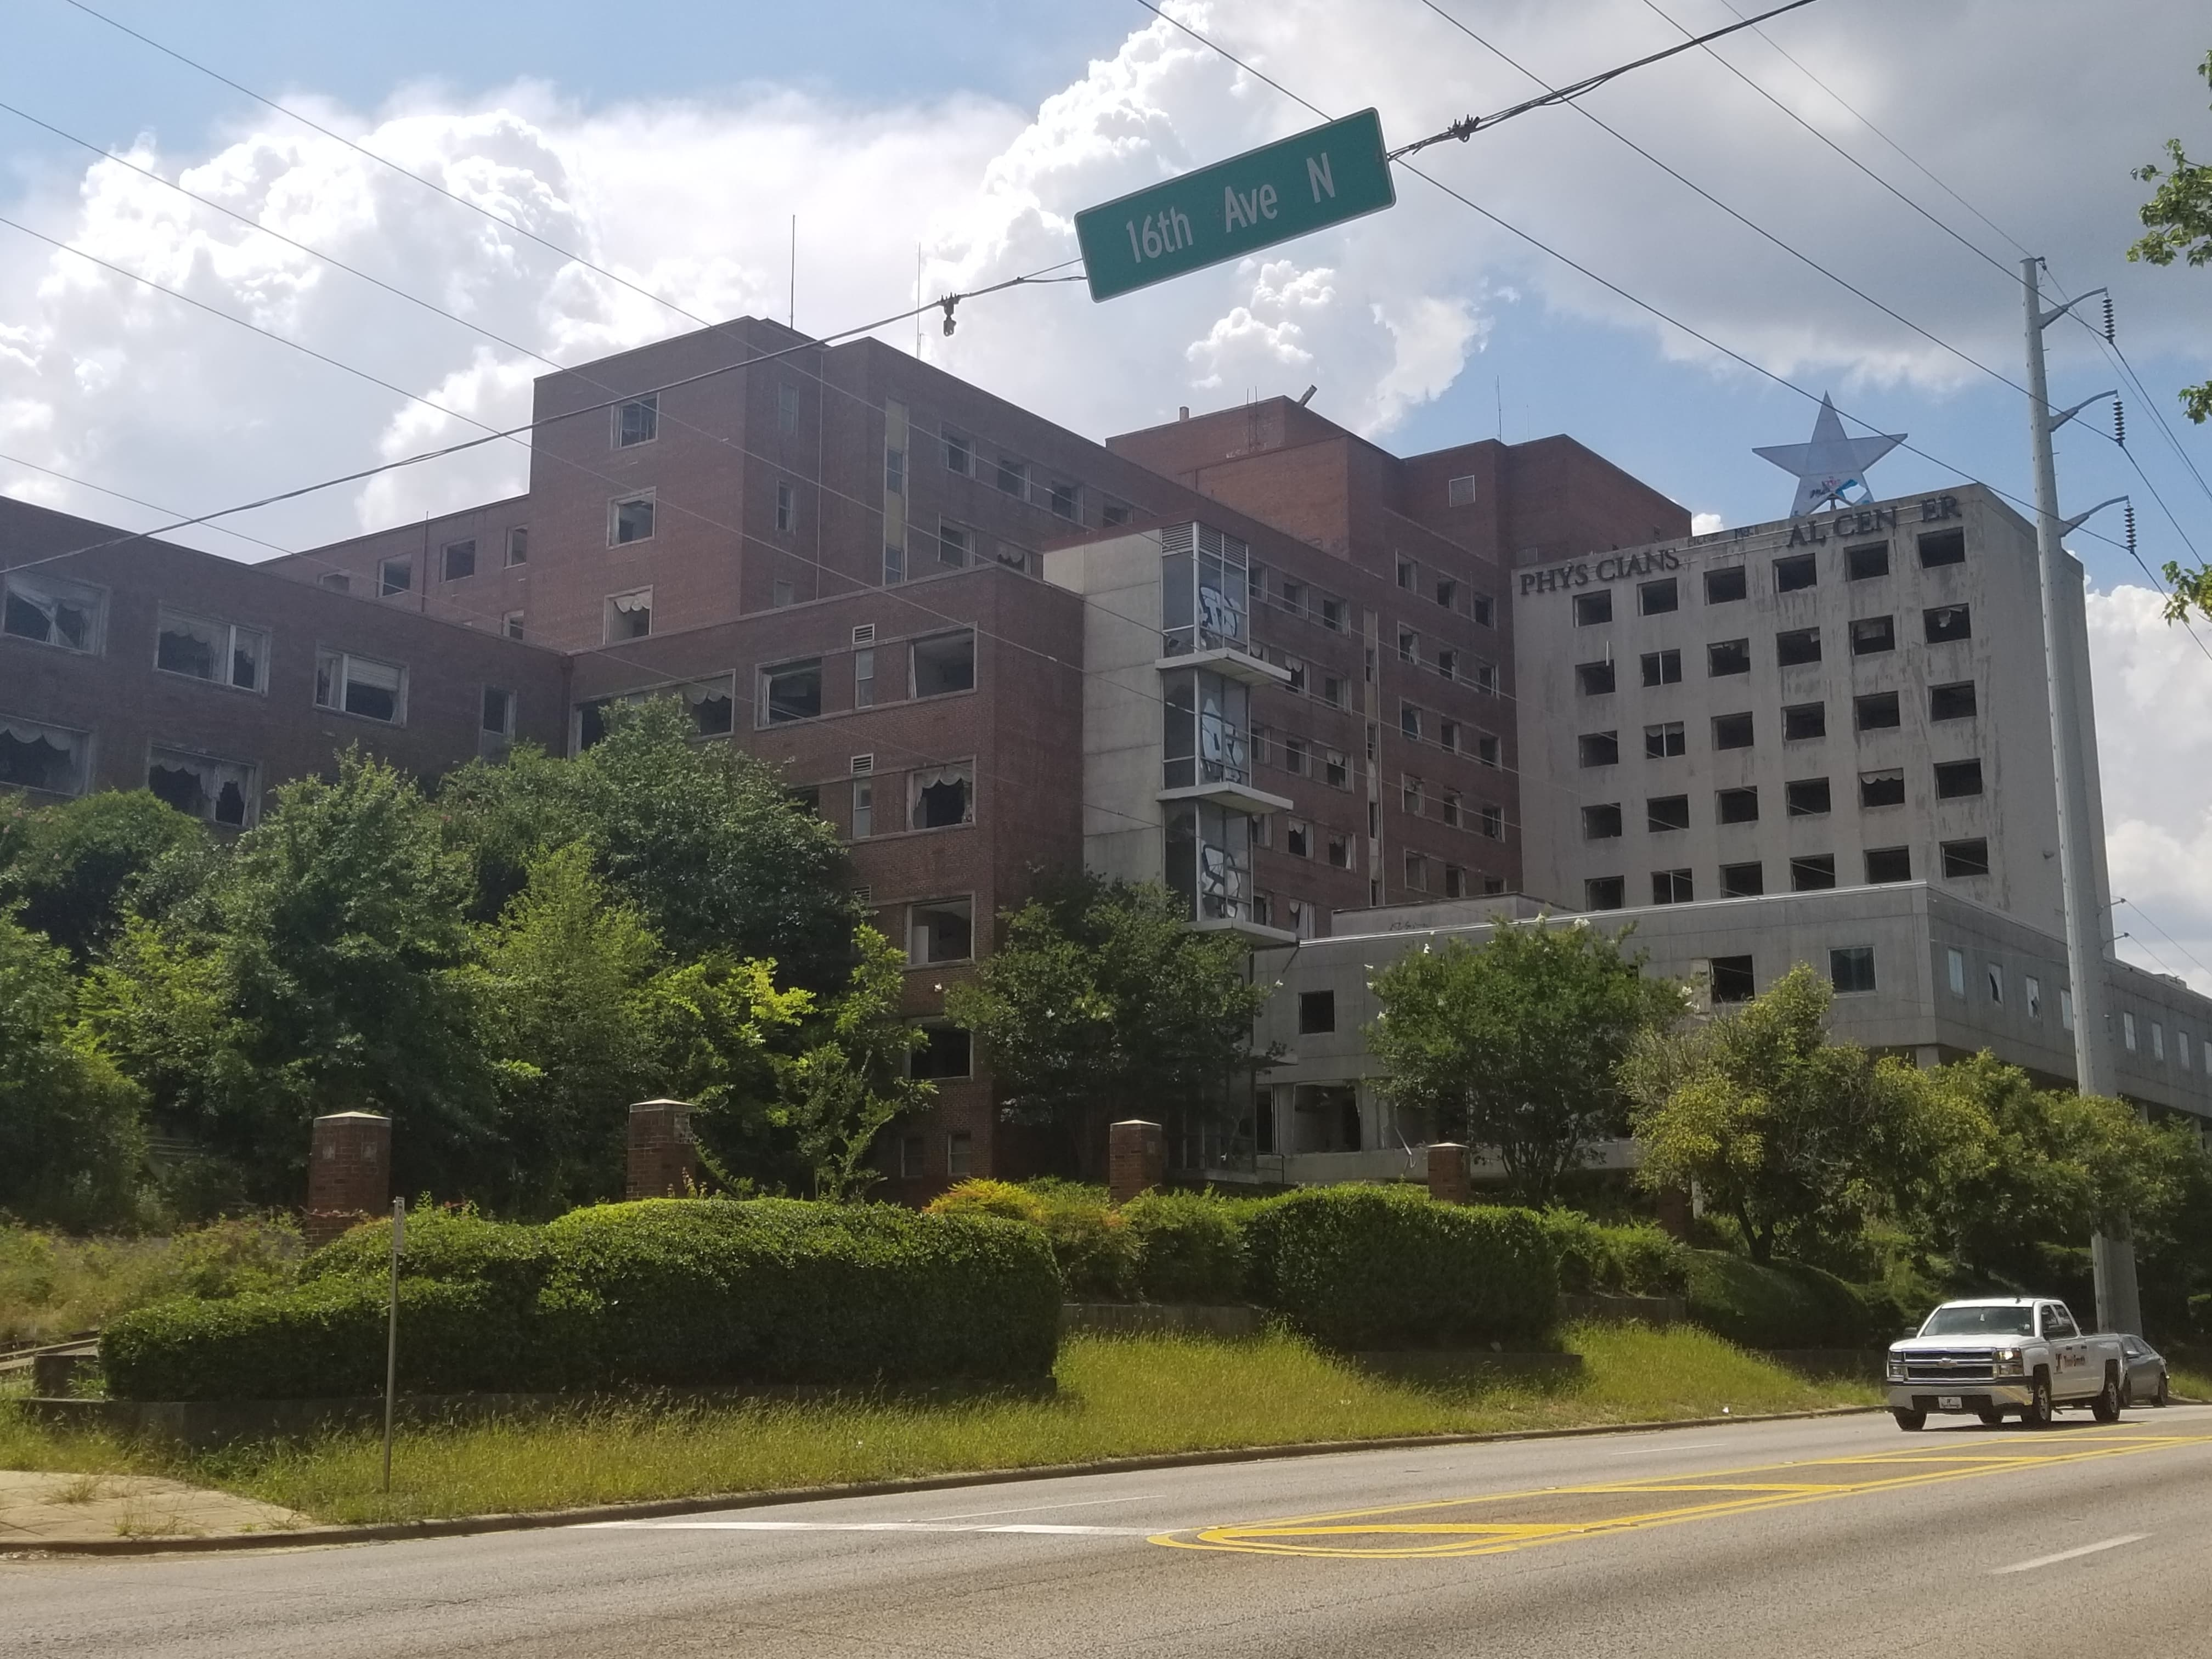 Carraway hospital site redevelopment slated to begin in